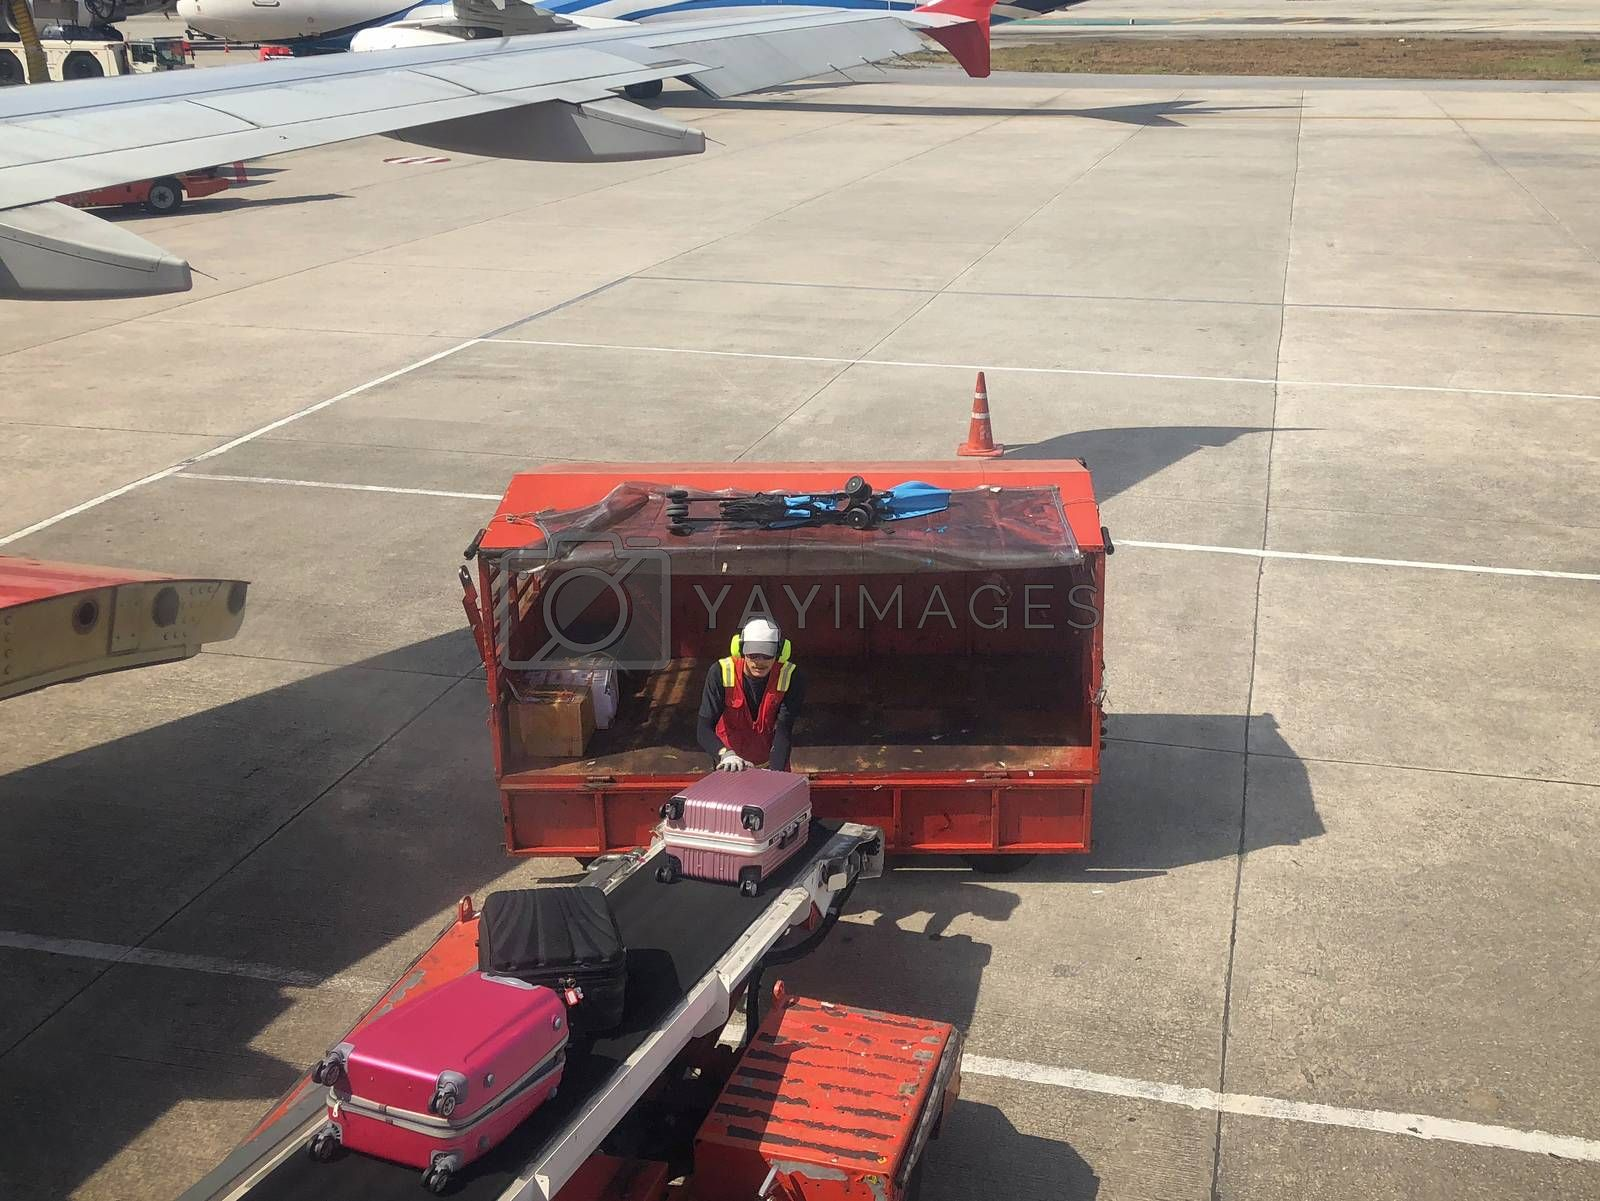 Baggage handlers working at Don Mueang International Airport